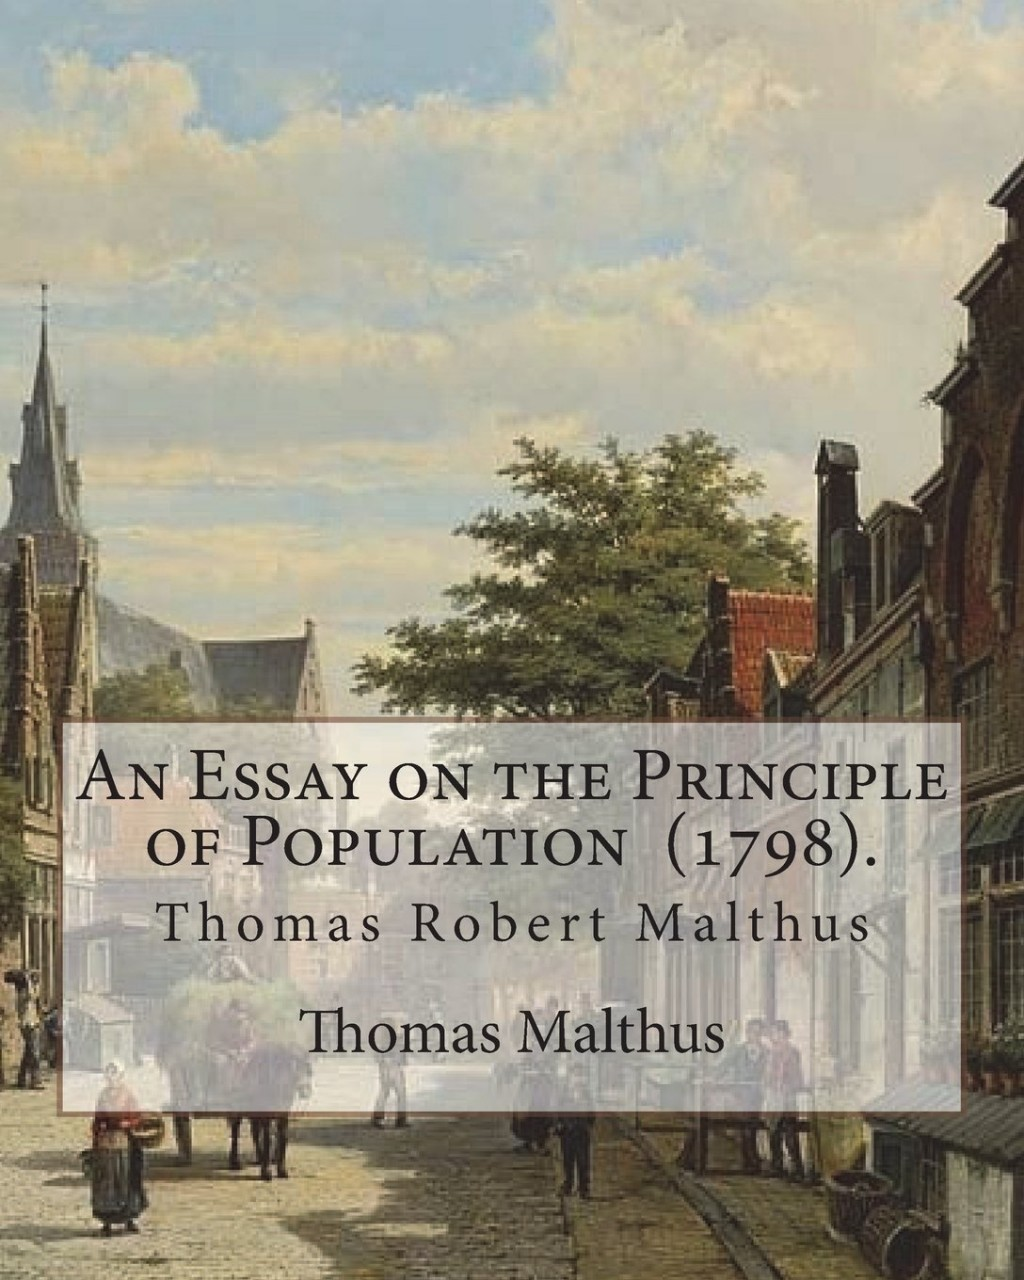 015 71giypnbhsl An Essay On The Principle Of Population Fascinating By Thomas Malthus Pdf In Concluded Which Following Large